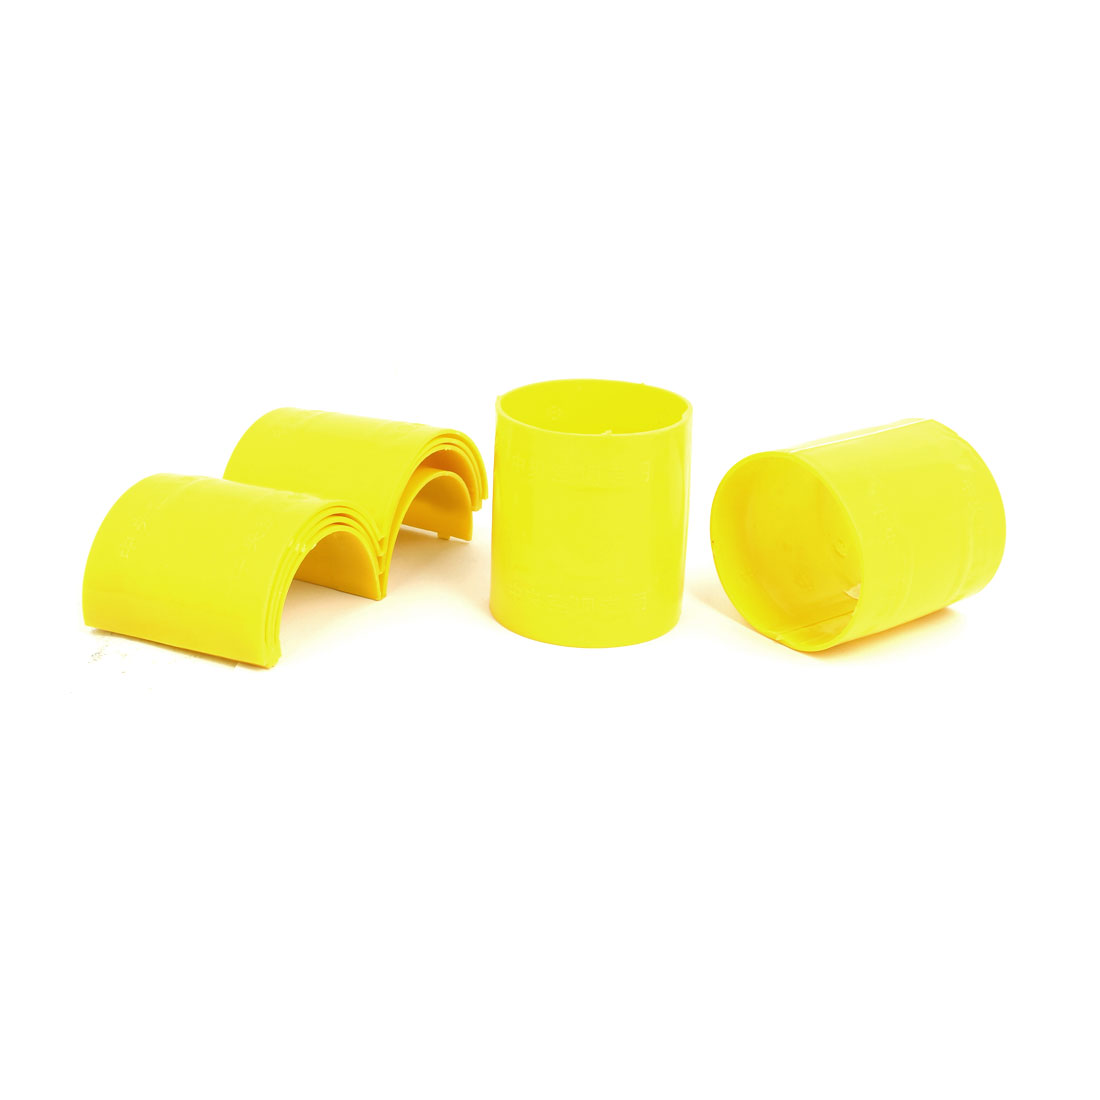 75mm Dia 2mm Thickness Central Air Conditioning Pipe Tube Clamp Yellow 6pcs